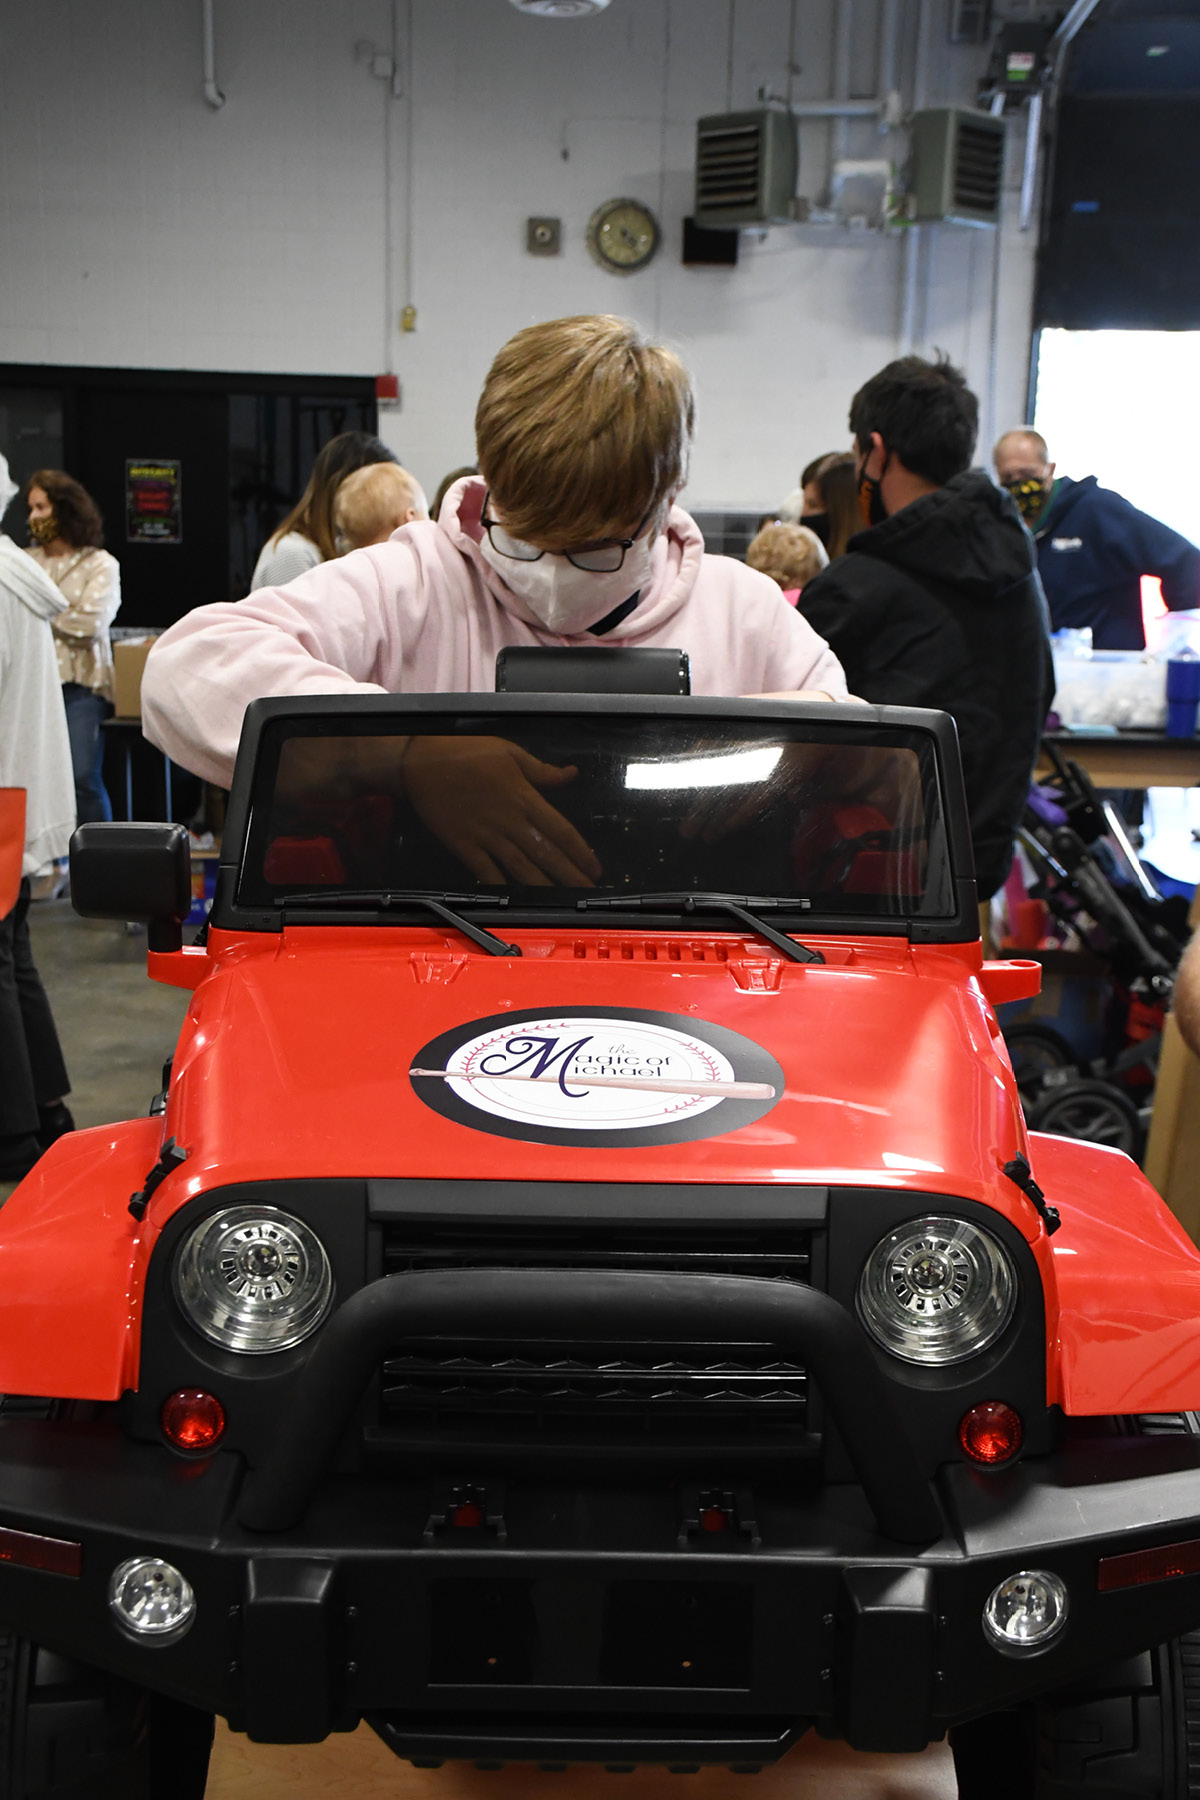 student adds seat to ride-on car